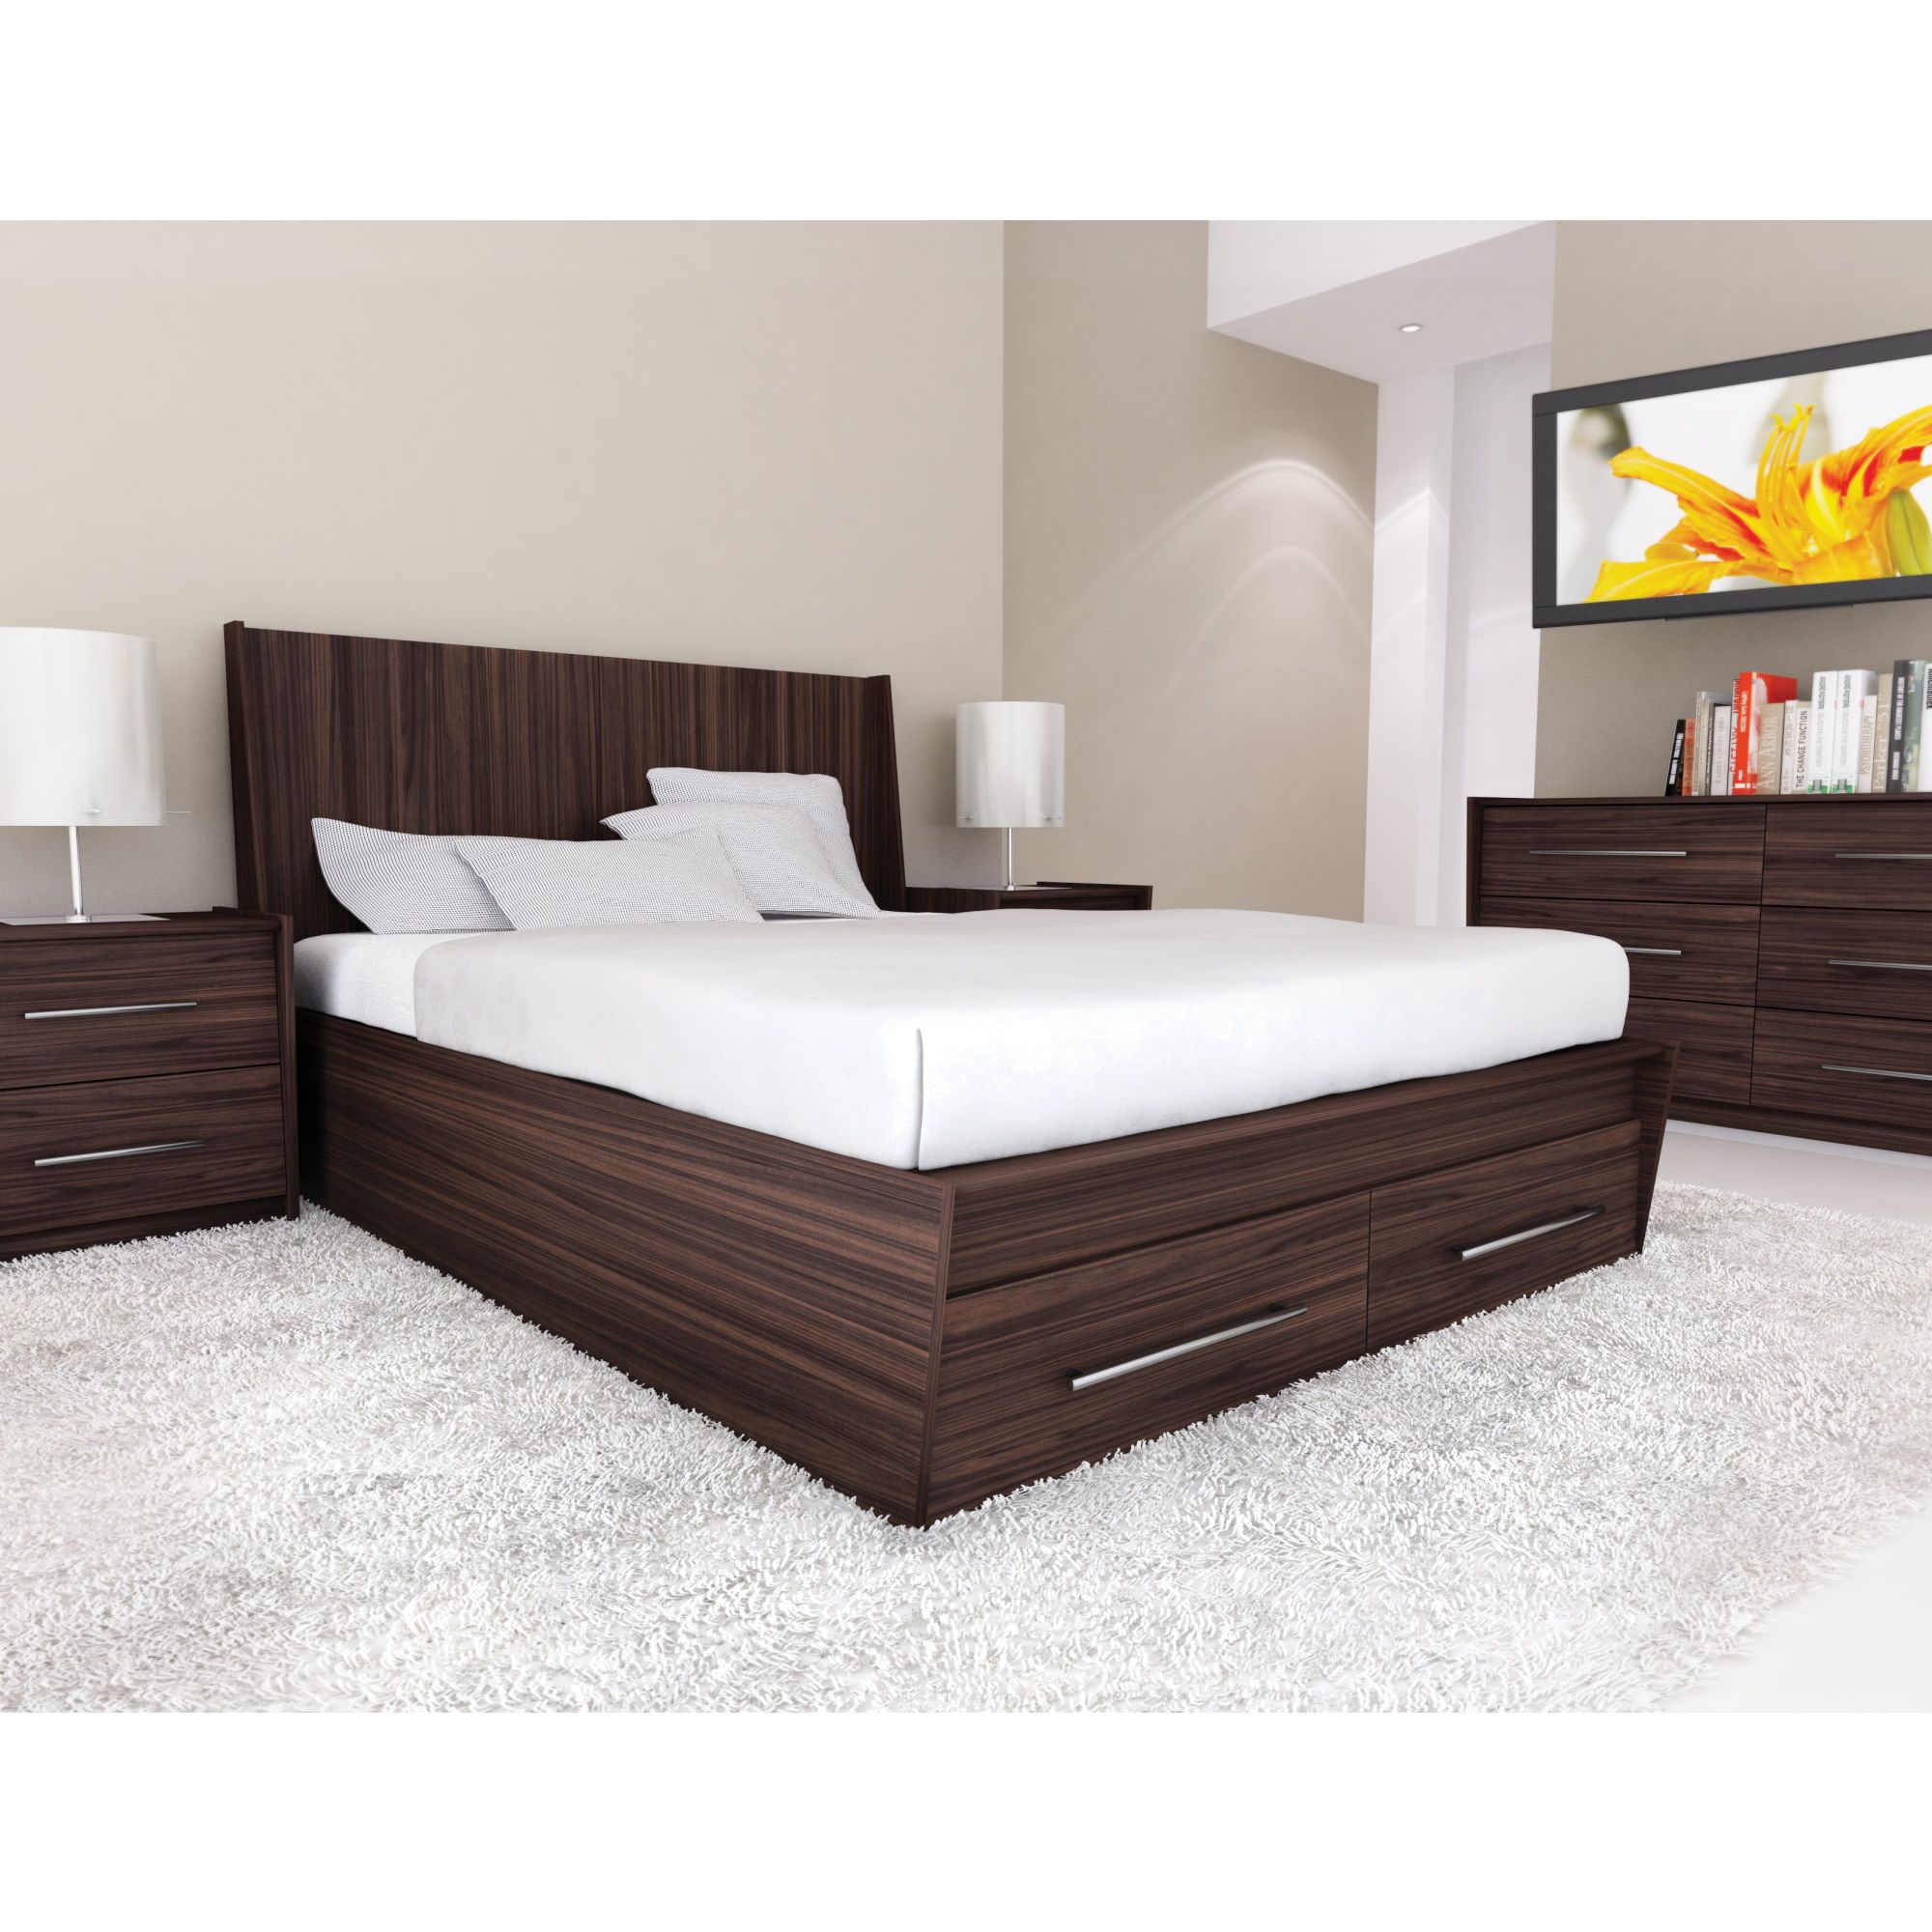 Bed designs for your comfortable bedroom interior design for Bed furniture design catalogue